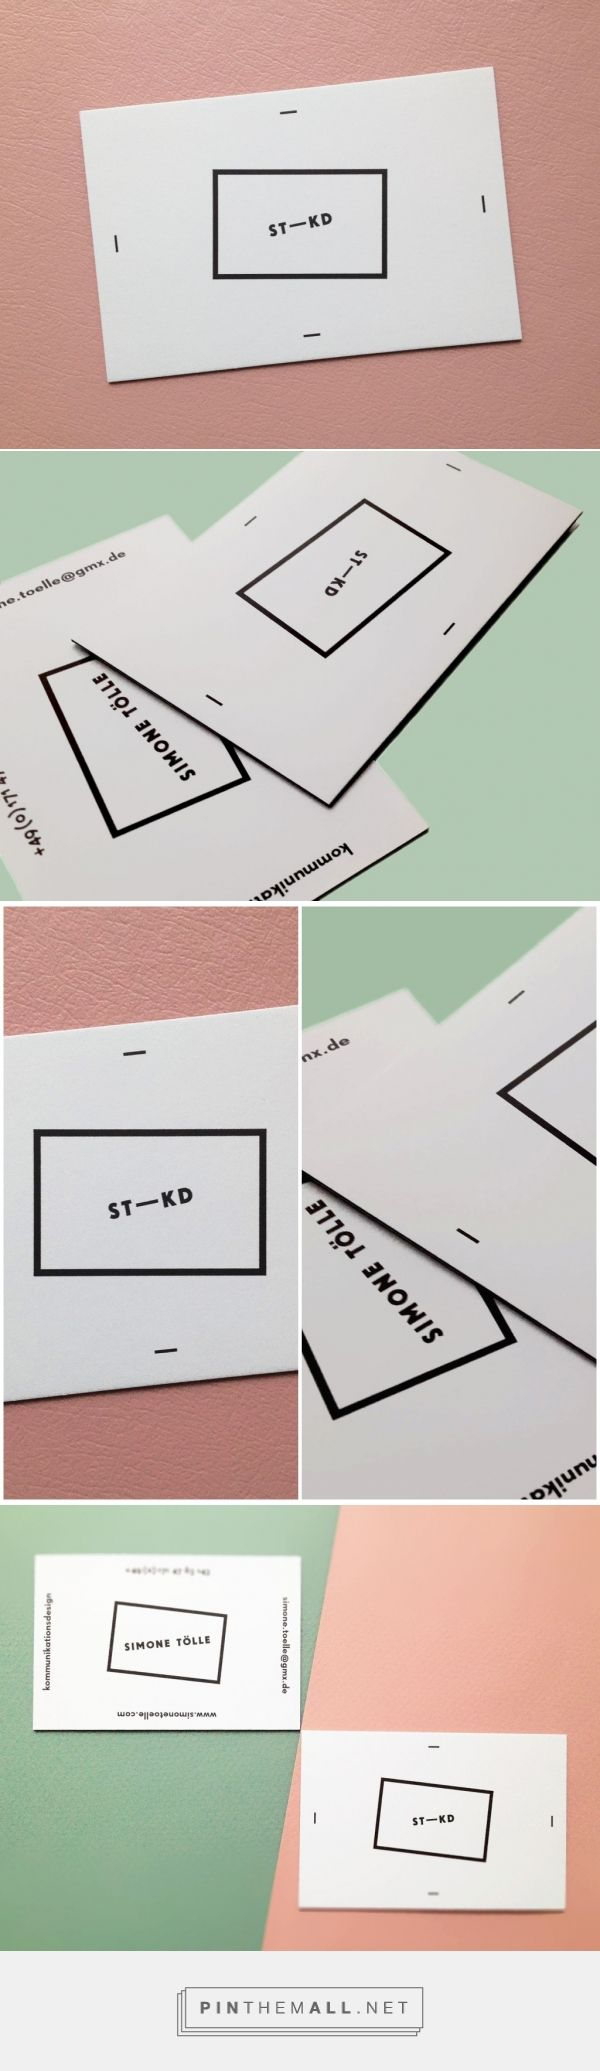 WAATERKANT: Conceptually And Experimentally: Self Branding By Simone Tölle - created via http://pinthemall.net